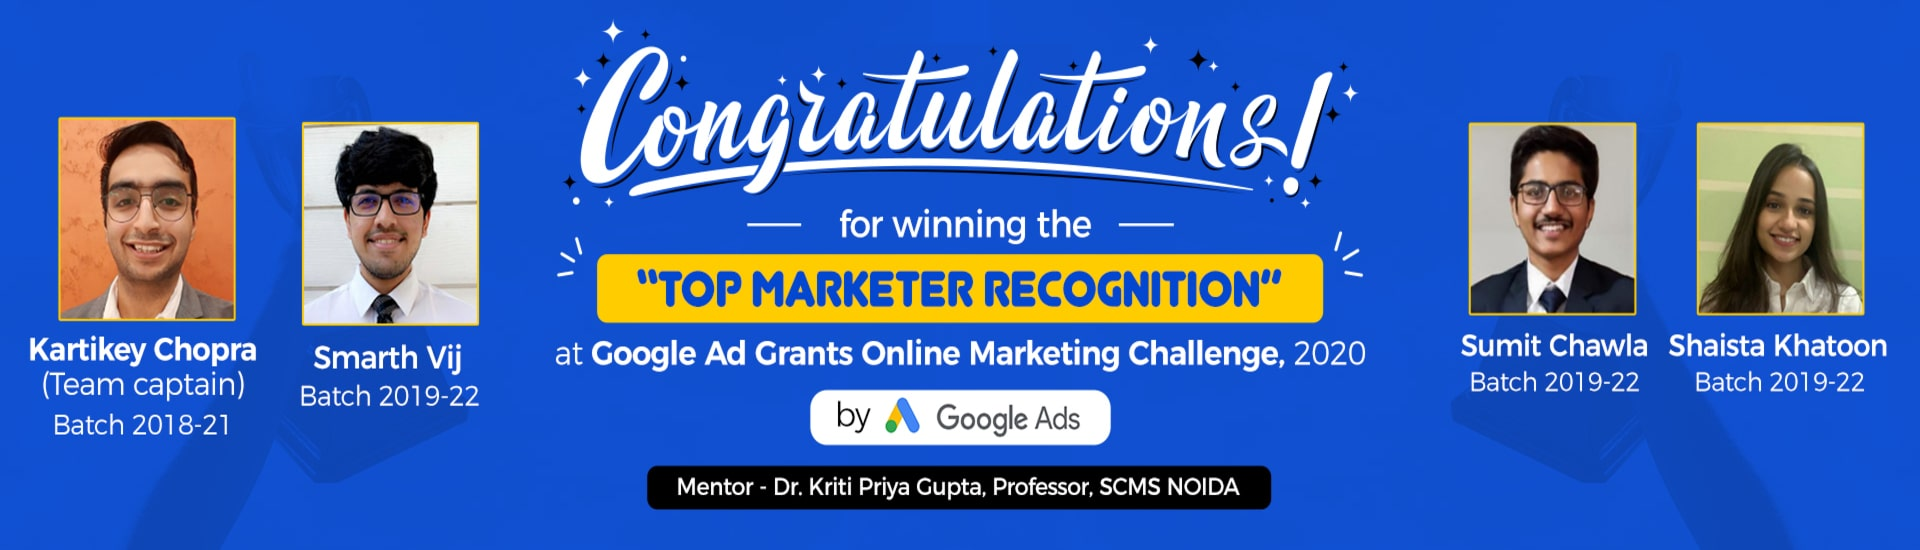 Top marketer recognition for SCMS NOIDA BBA students